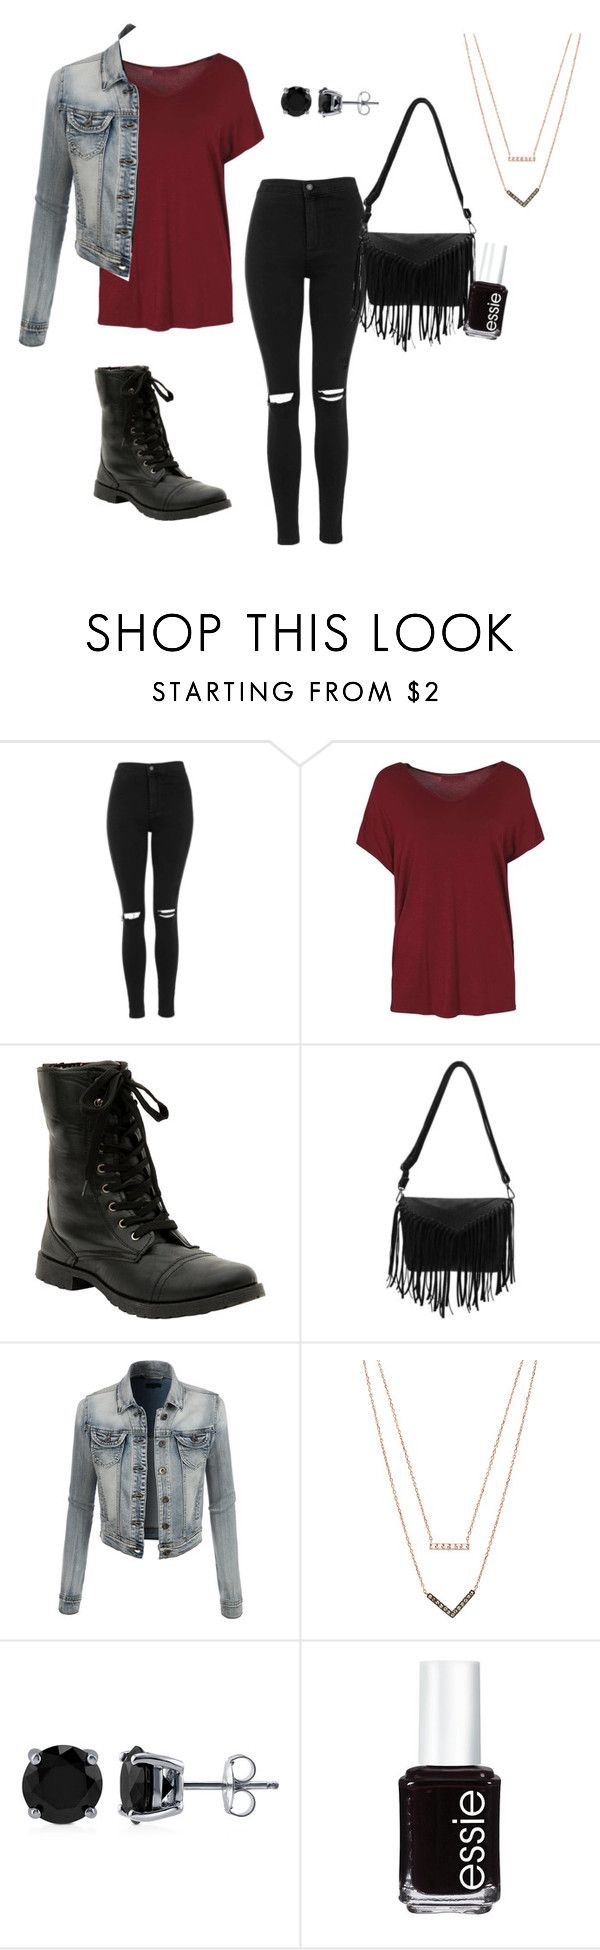 """""""Emily Fields - Inspired Outfit - PLL"""" by pll-blog on Polyvore featuring Topshop, LE3NO, Michael Kors, BERRICLE, Essie, women's clothing, women's fashion, women, female and woman"""